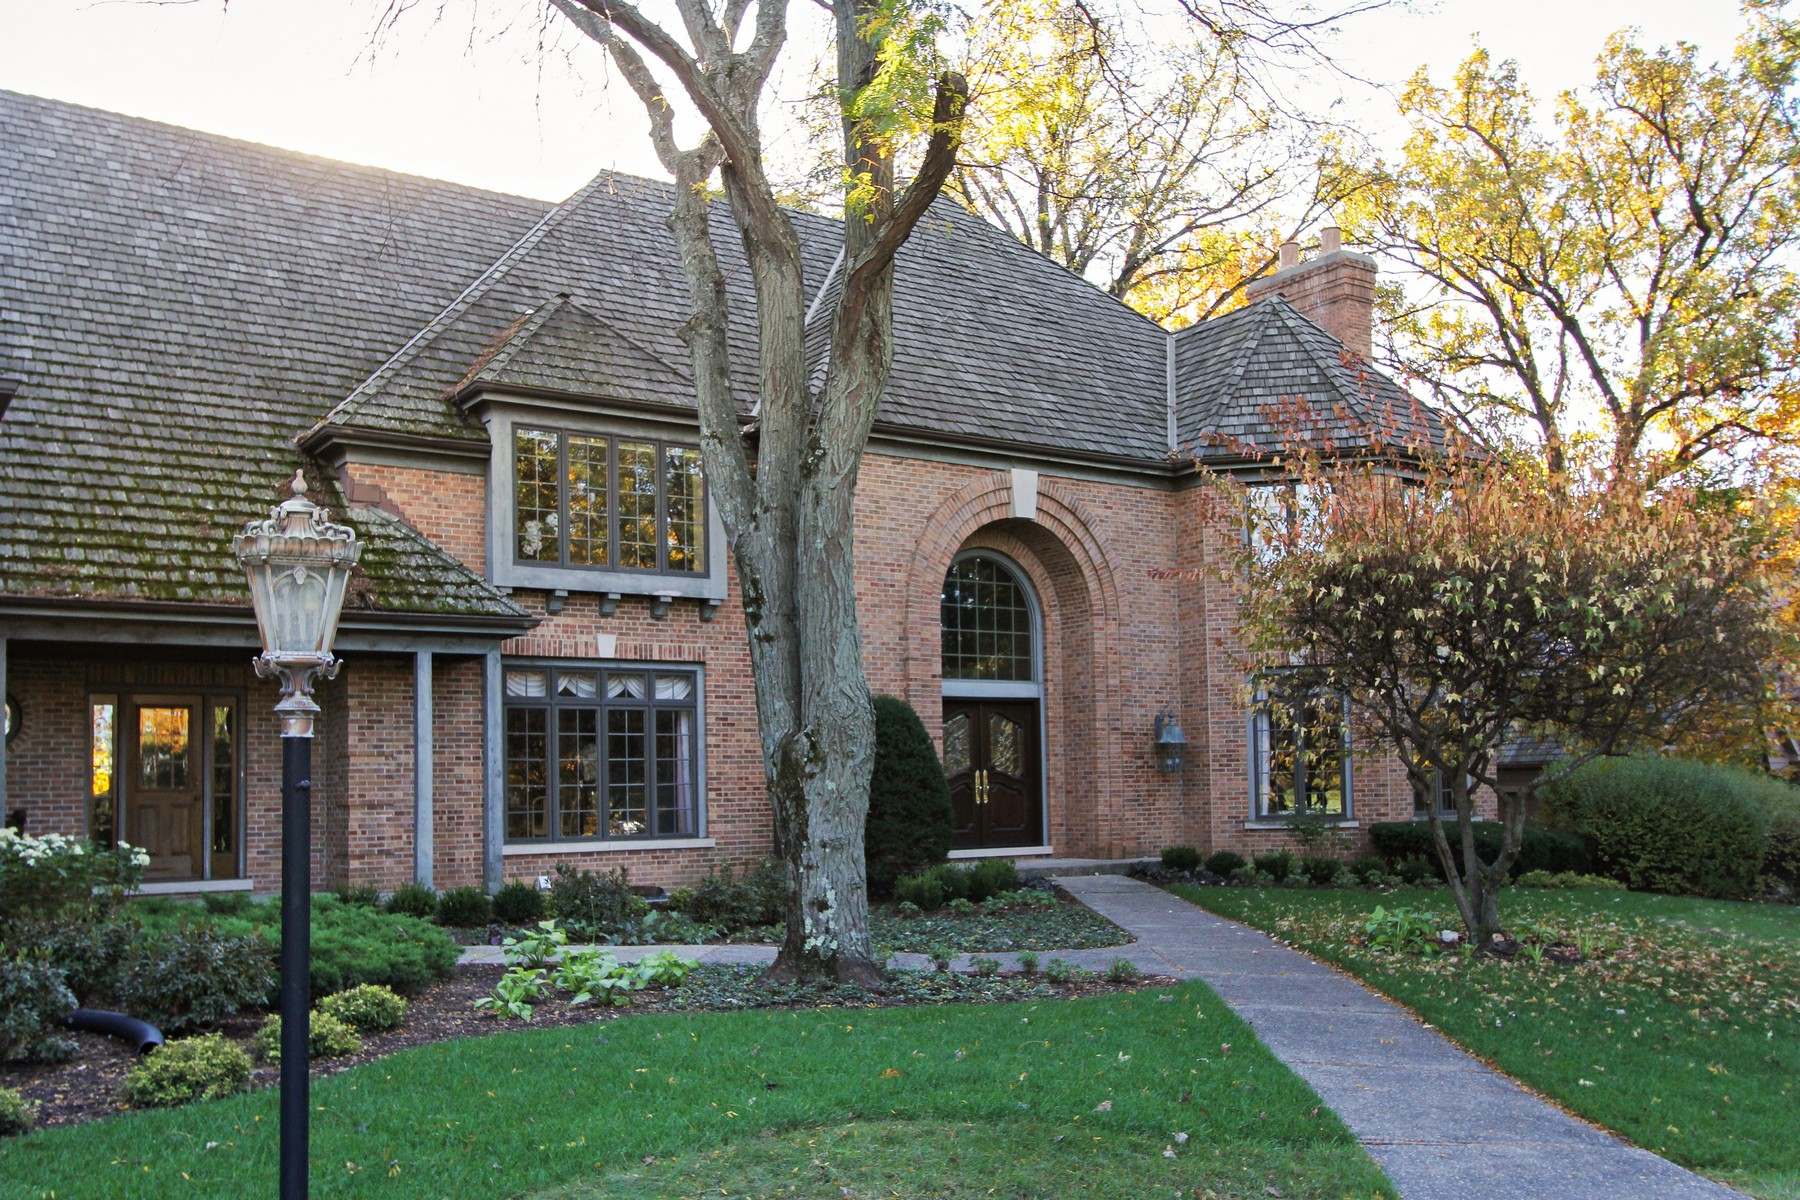 Single Family Homes for Active at Luxury and relaxation 39 Castleton Court North Barrington, Illinois 60010 United States